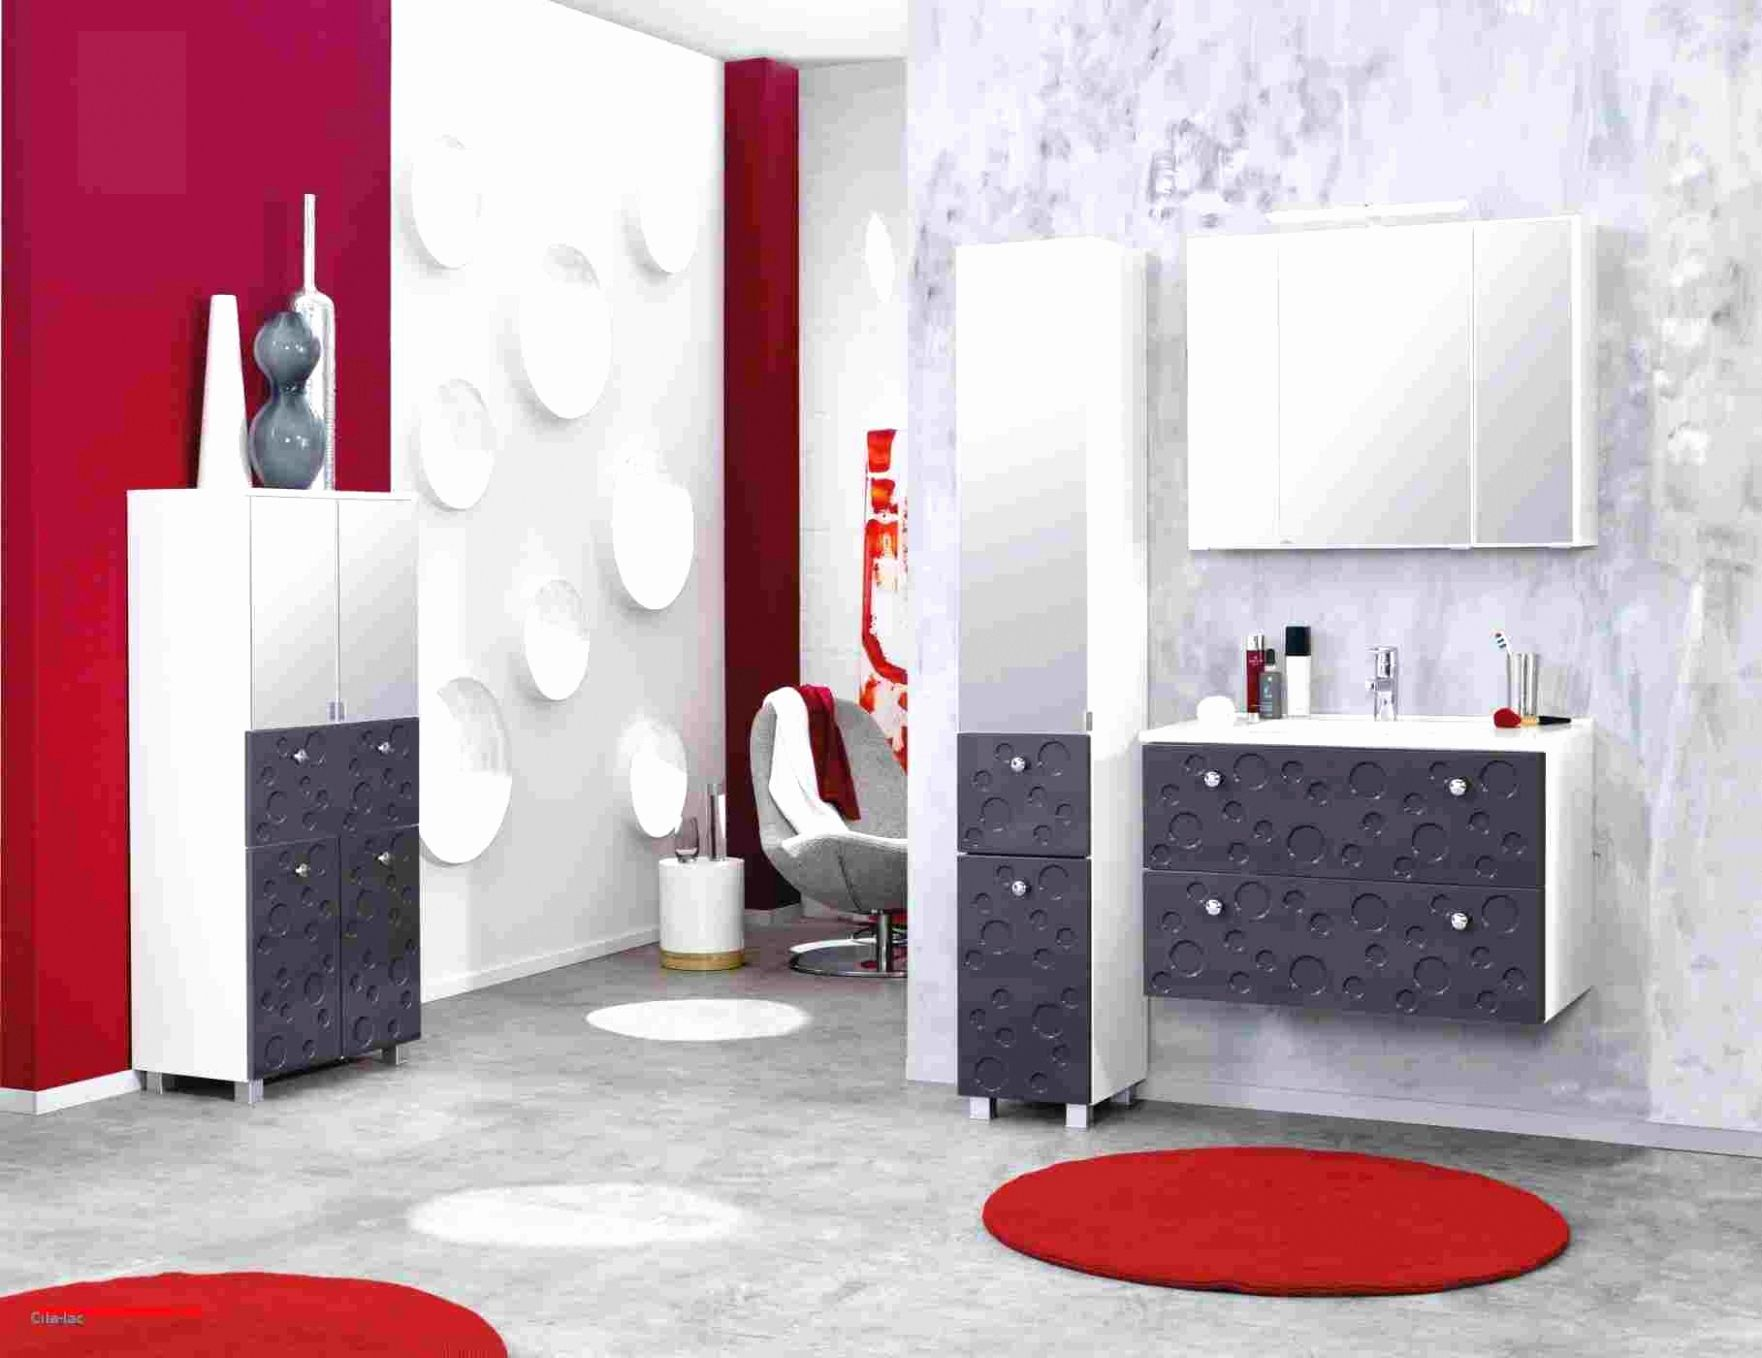 44 Herrlich Badezimmer Aufbewahrung Schminke Du Musst Wissen Diy Furniture Bedroom Red Living Room Decor Main Bathroom Ideas